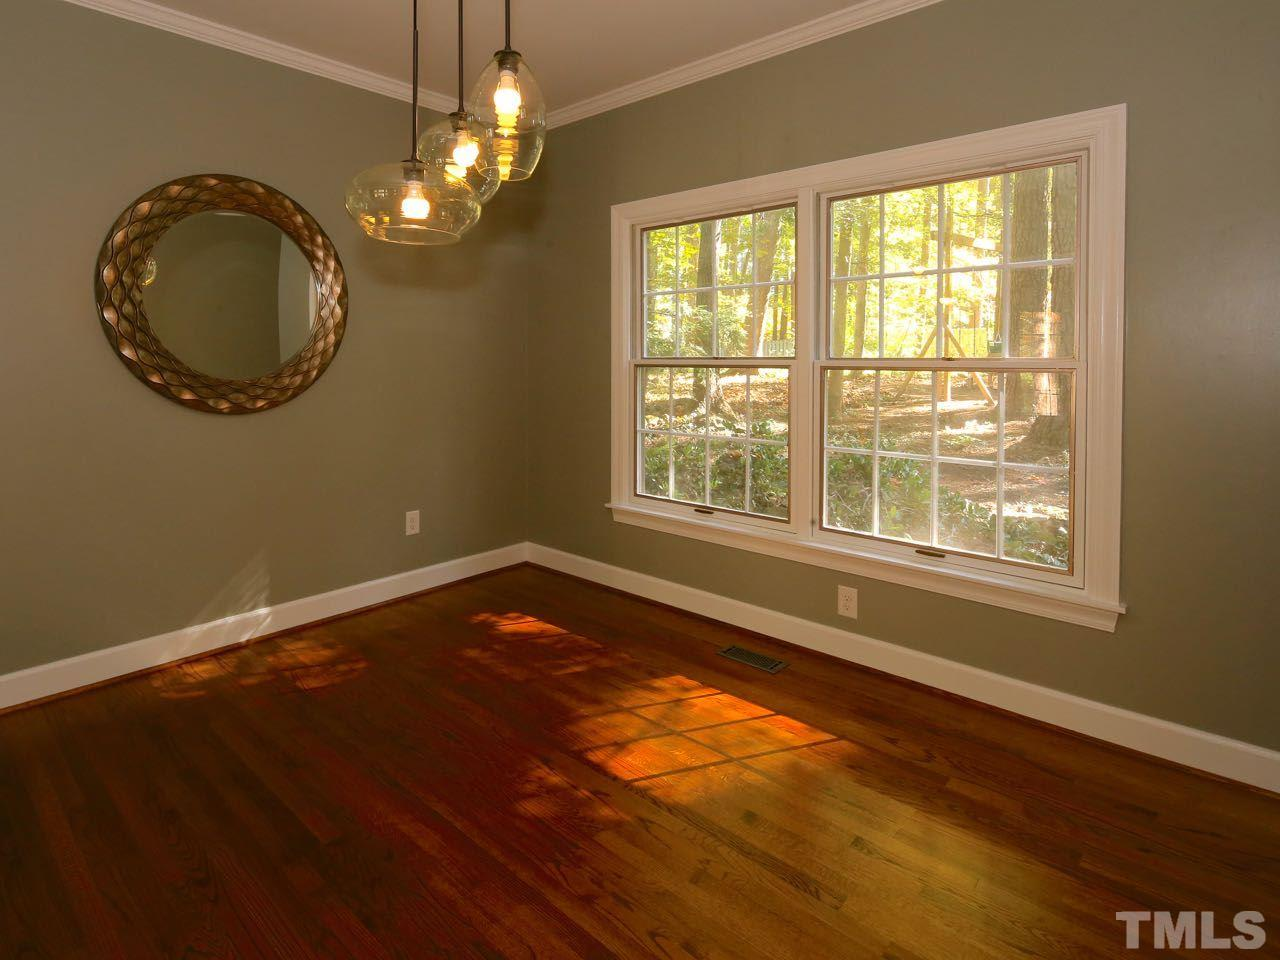 The master bedroom has a beautiful, high-quality, thick pile carpet. The window treatments do not convey.